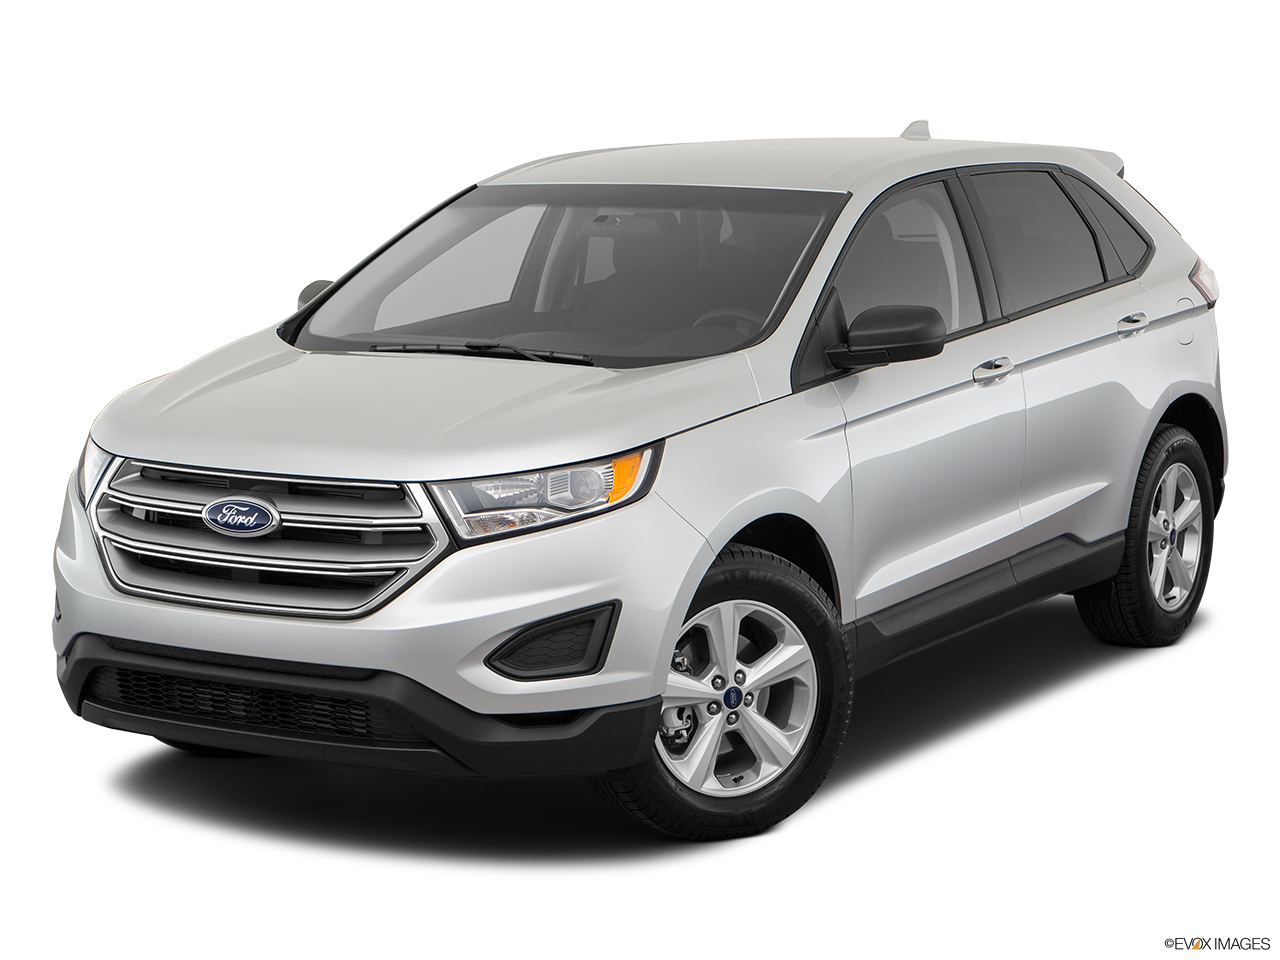 Ford Edge 2018, Saudi Arabia, Front angle view.